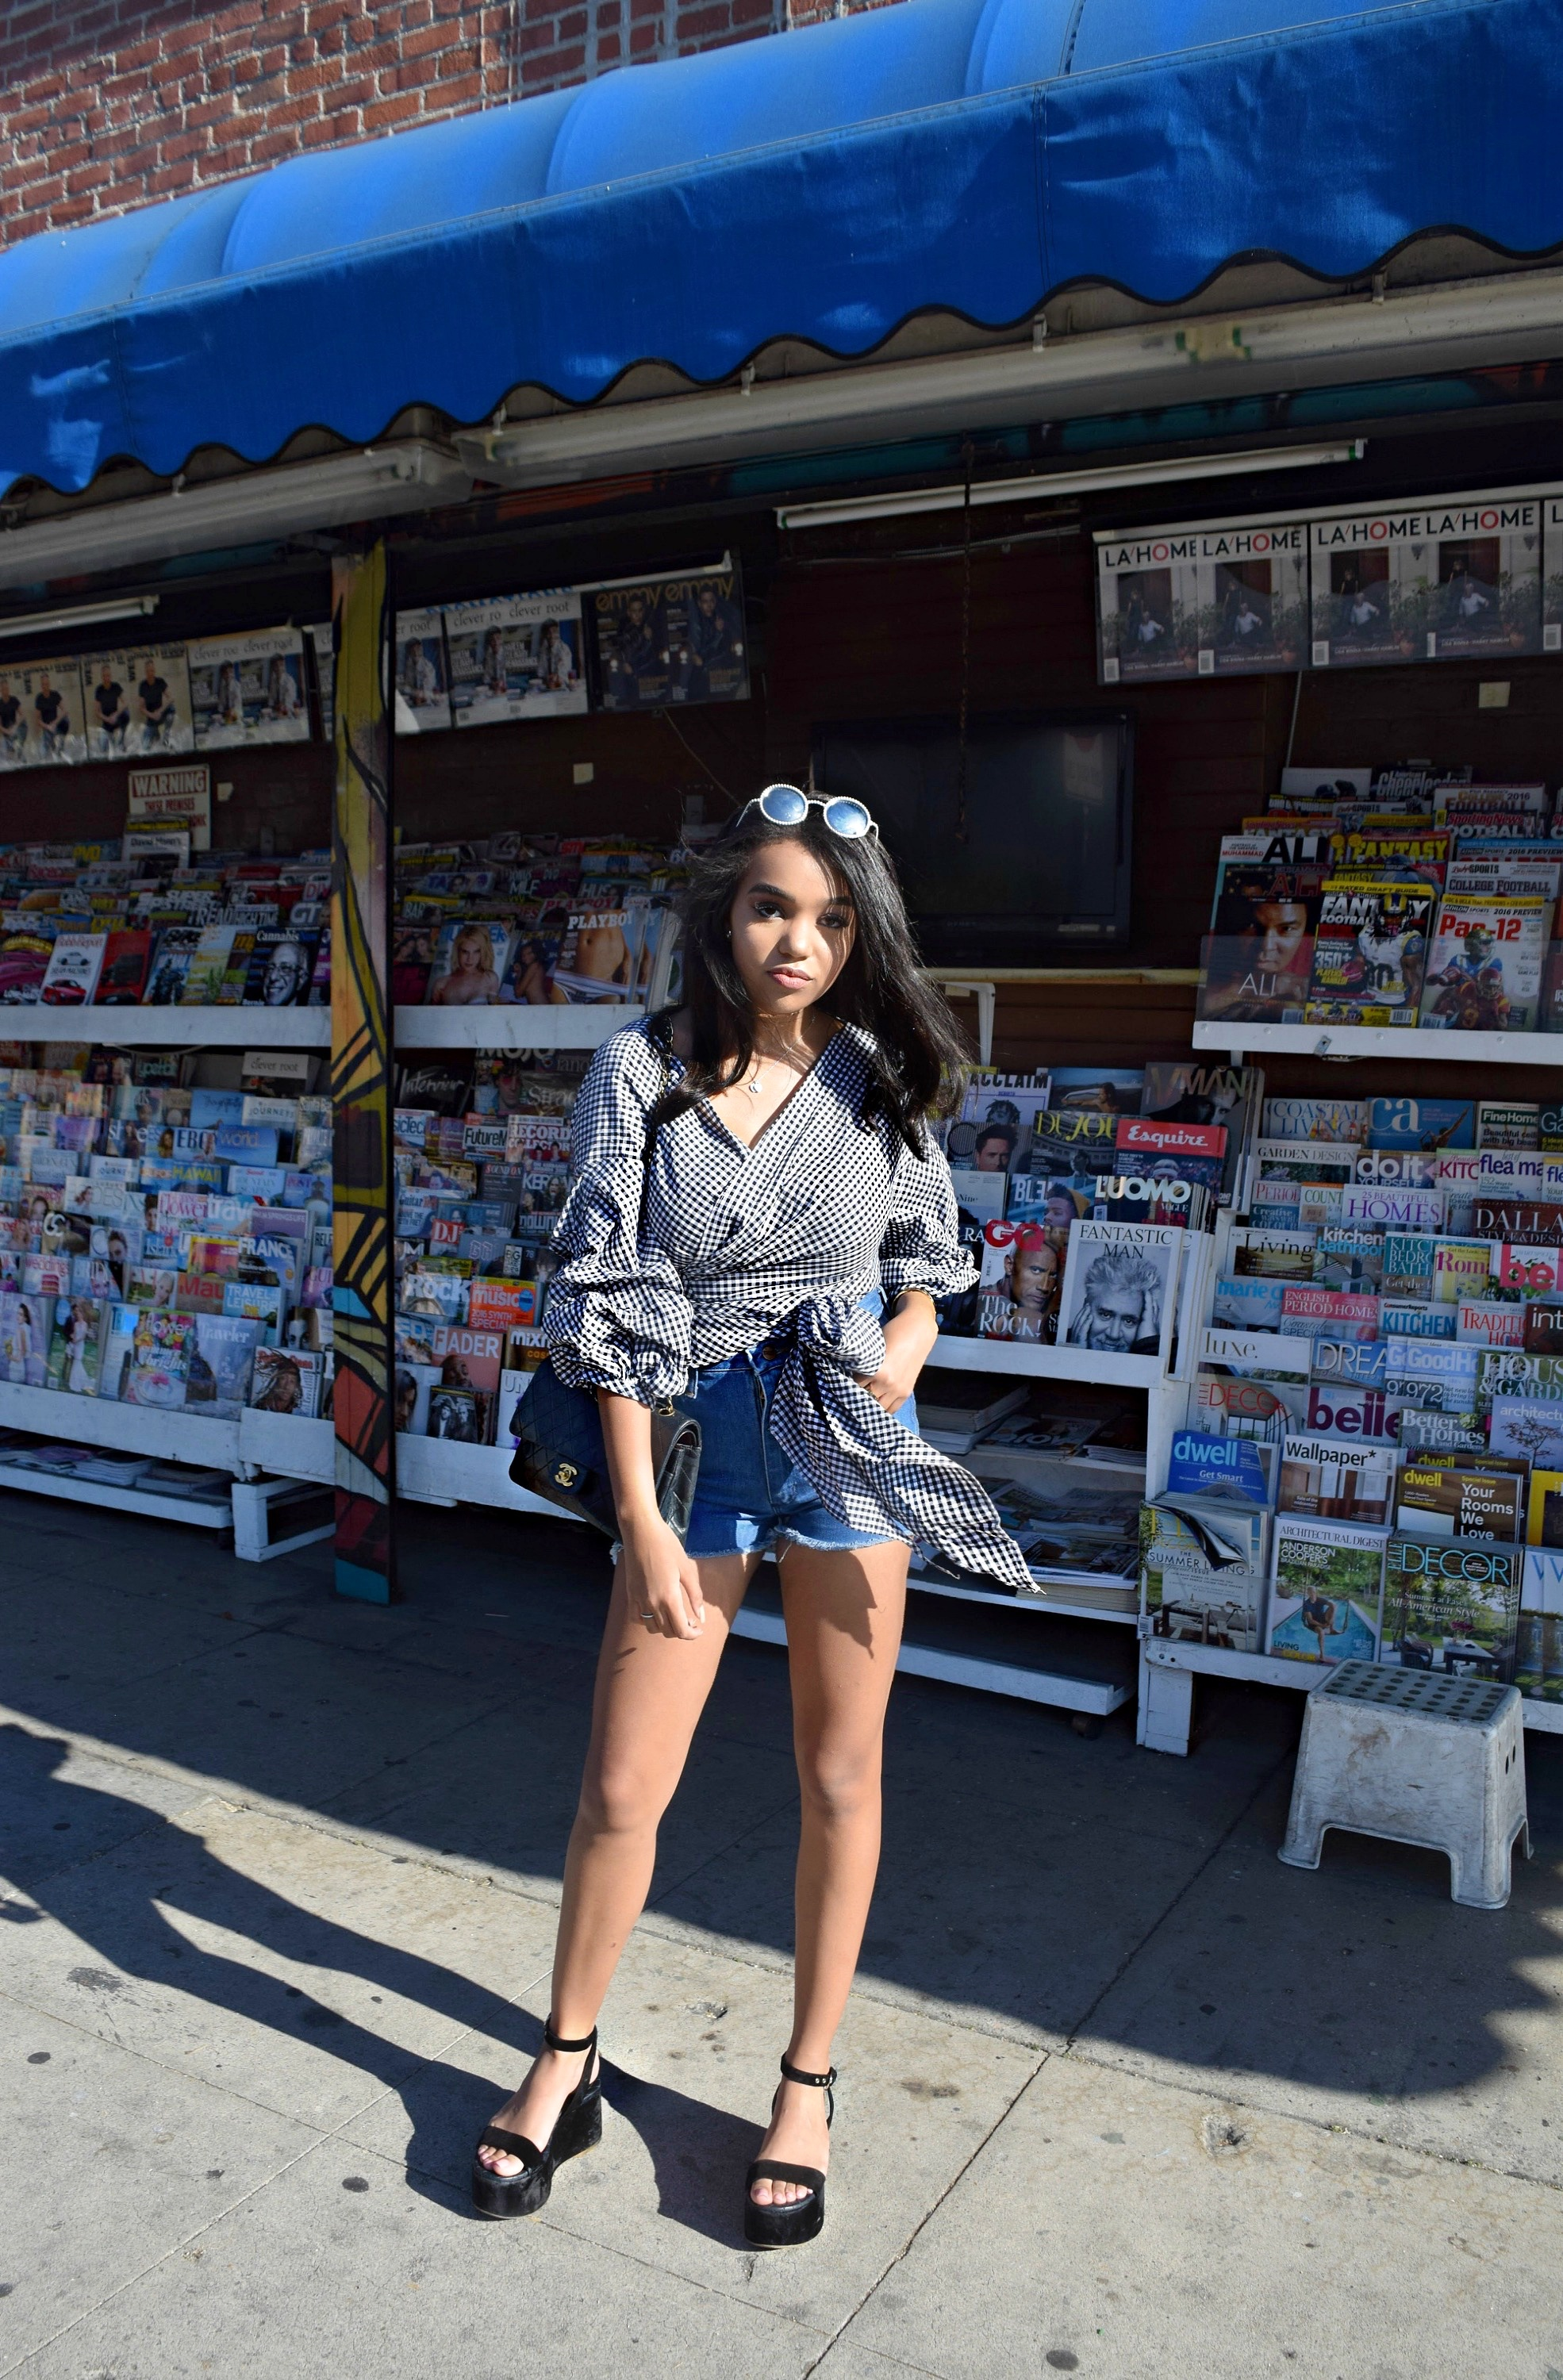 Denim Shorts // Storets Top // Chanel Platforms, Sunglasses & Classic Flap Bag // Summer Street Style // Los Angeles Fashion Blogger Daphne Blunt: To Style, With Love